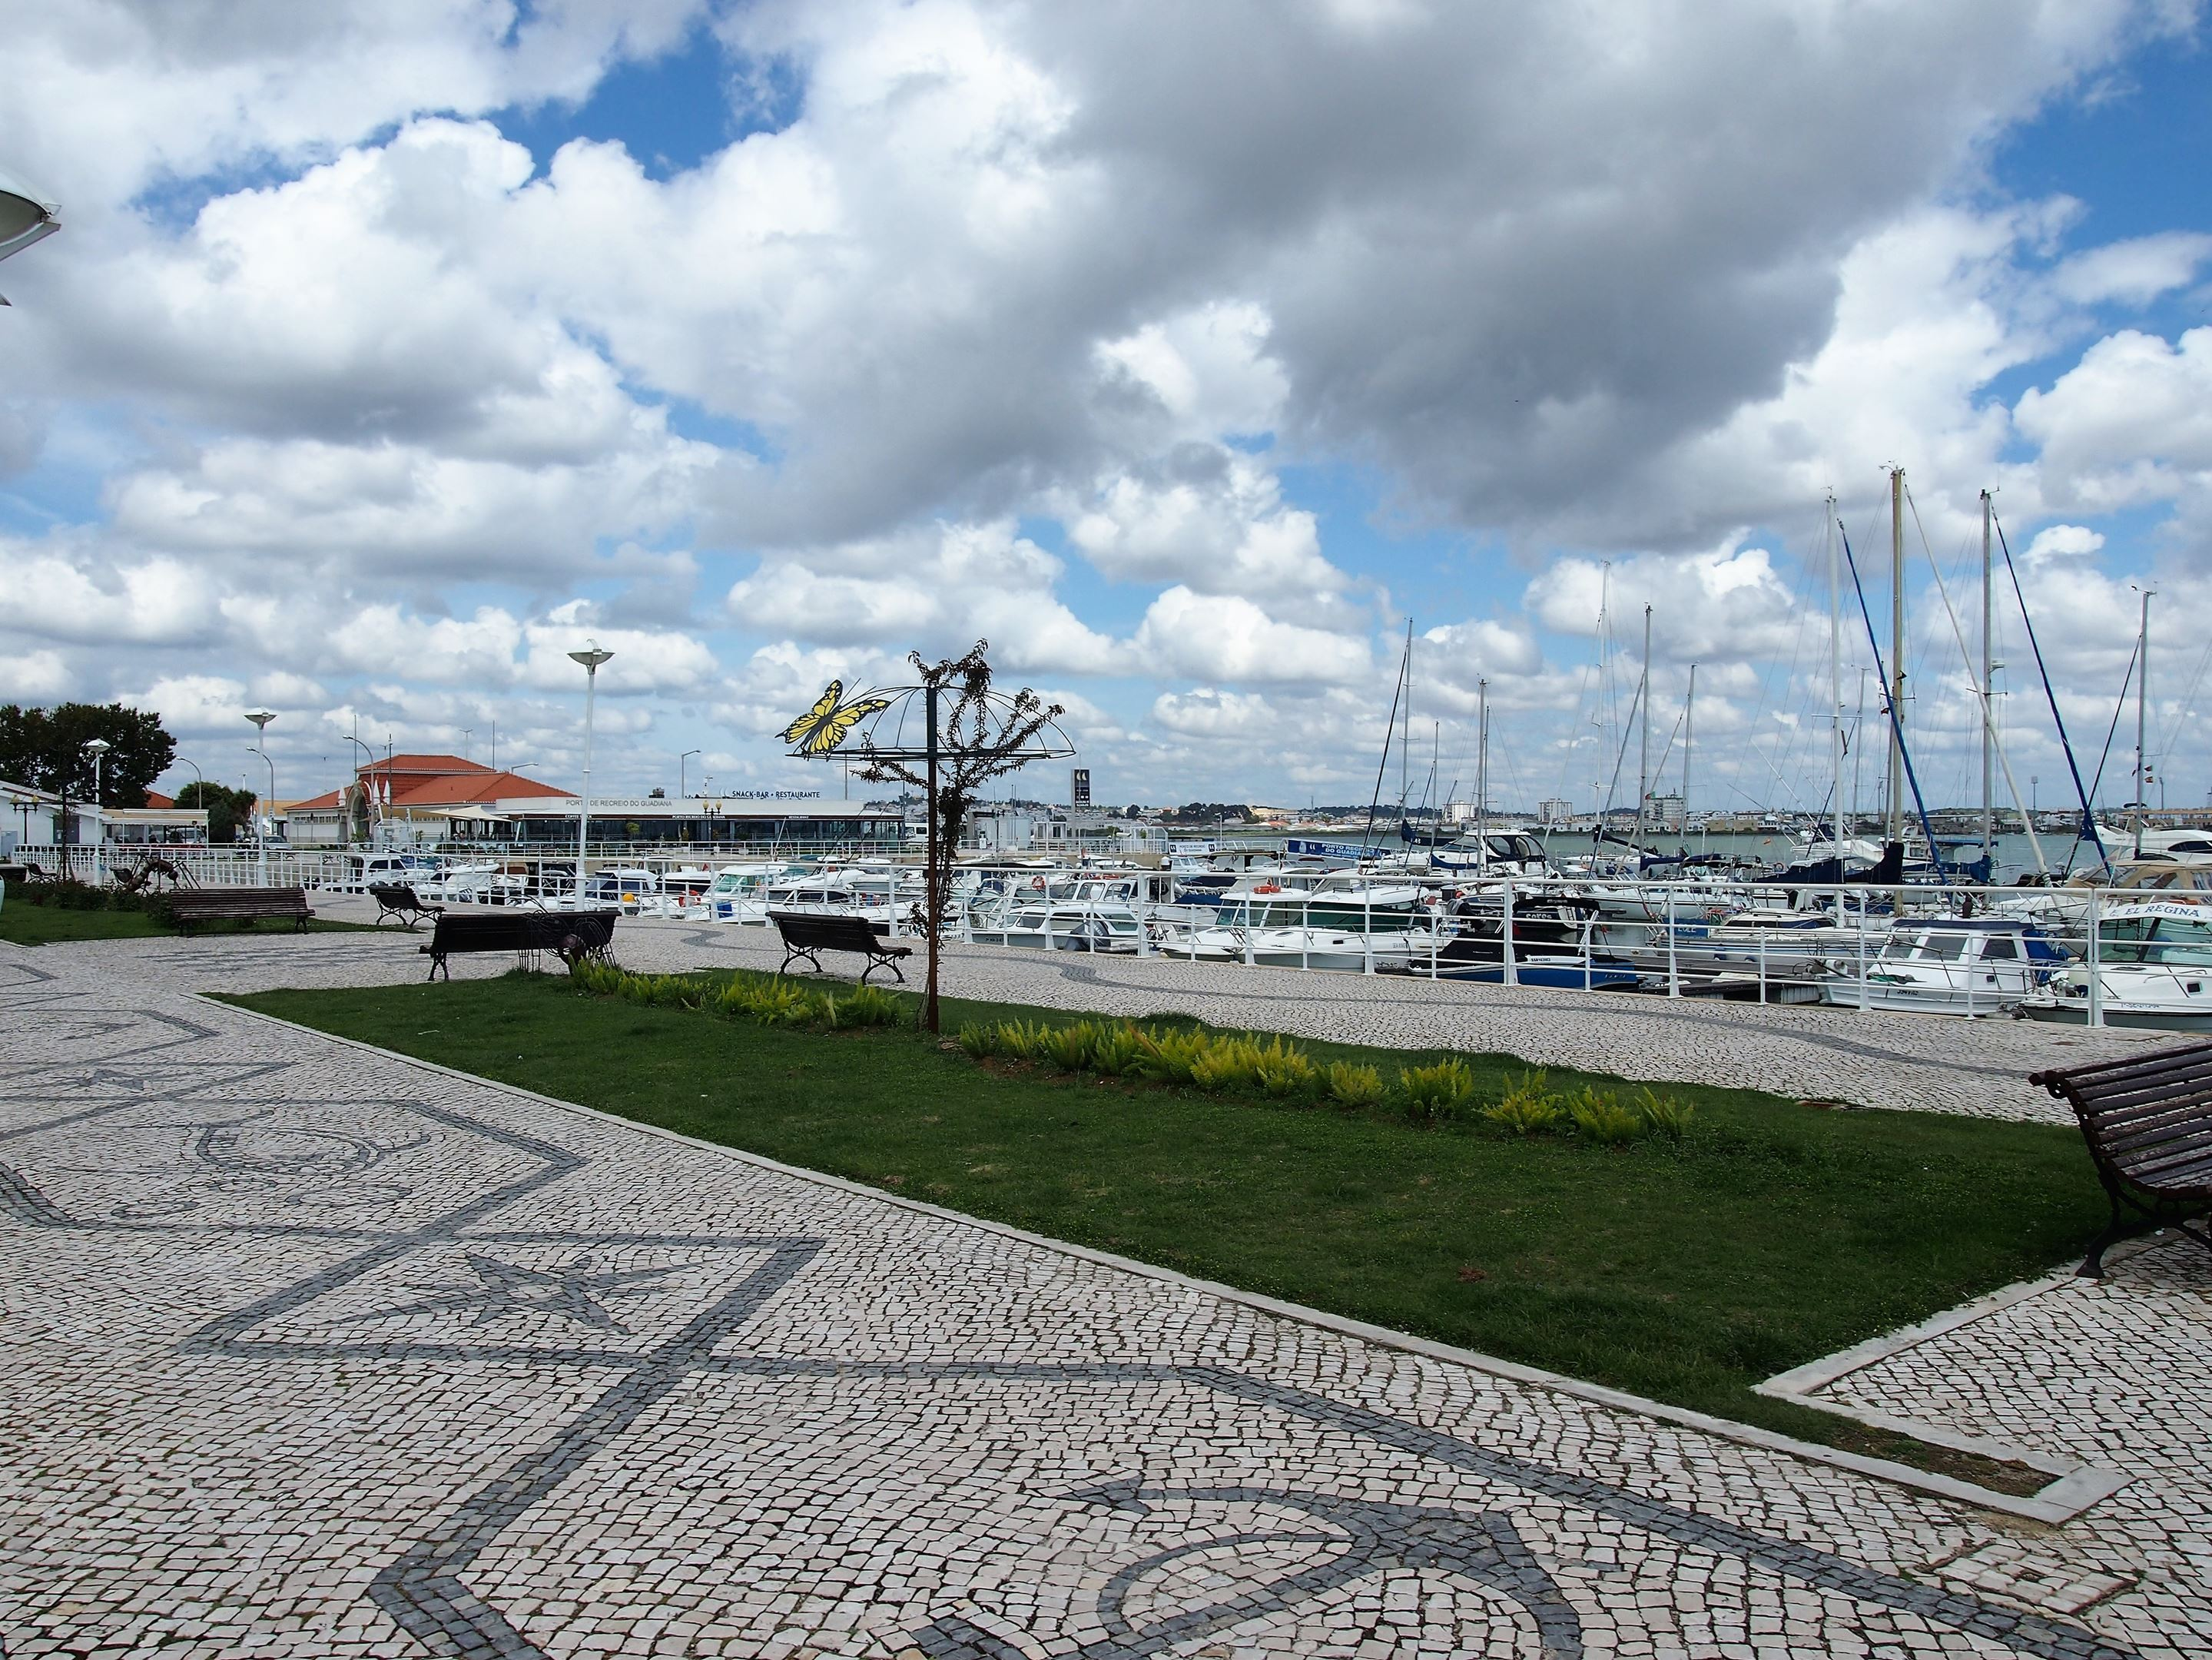 The marina at Vila Real de Santo António. The ferry to Ayamonte departs from the far left side.